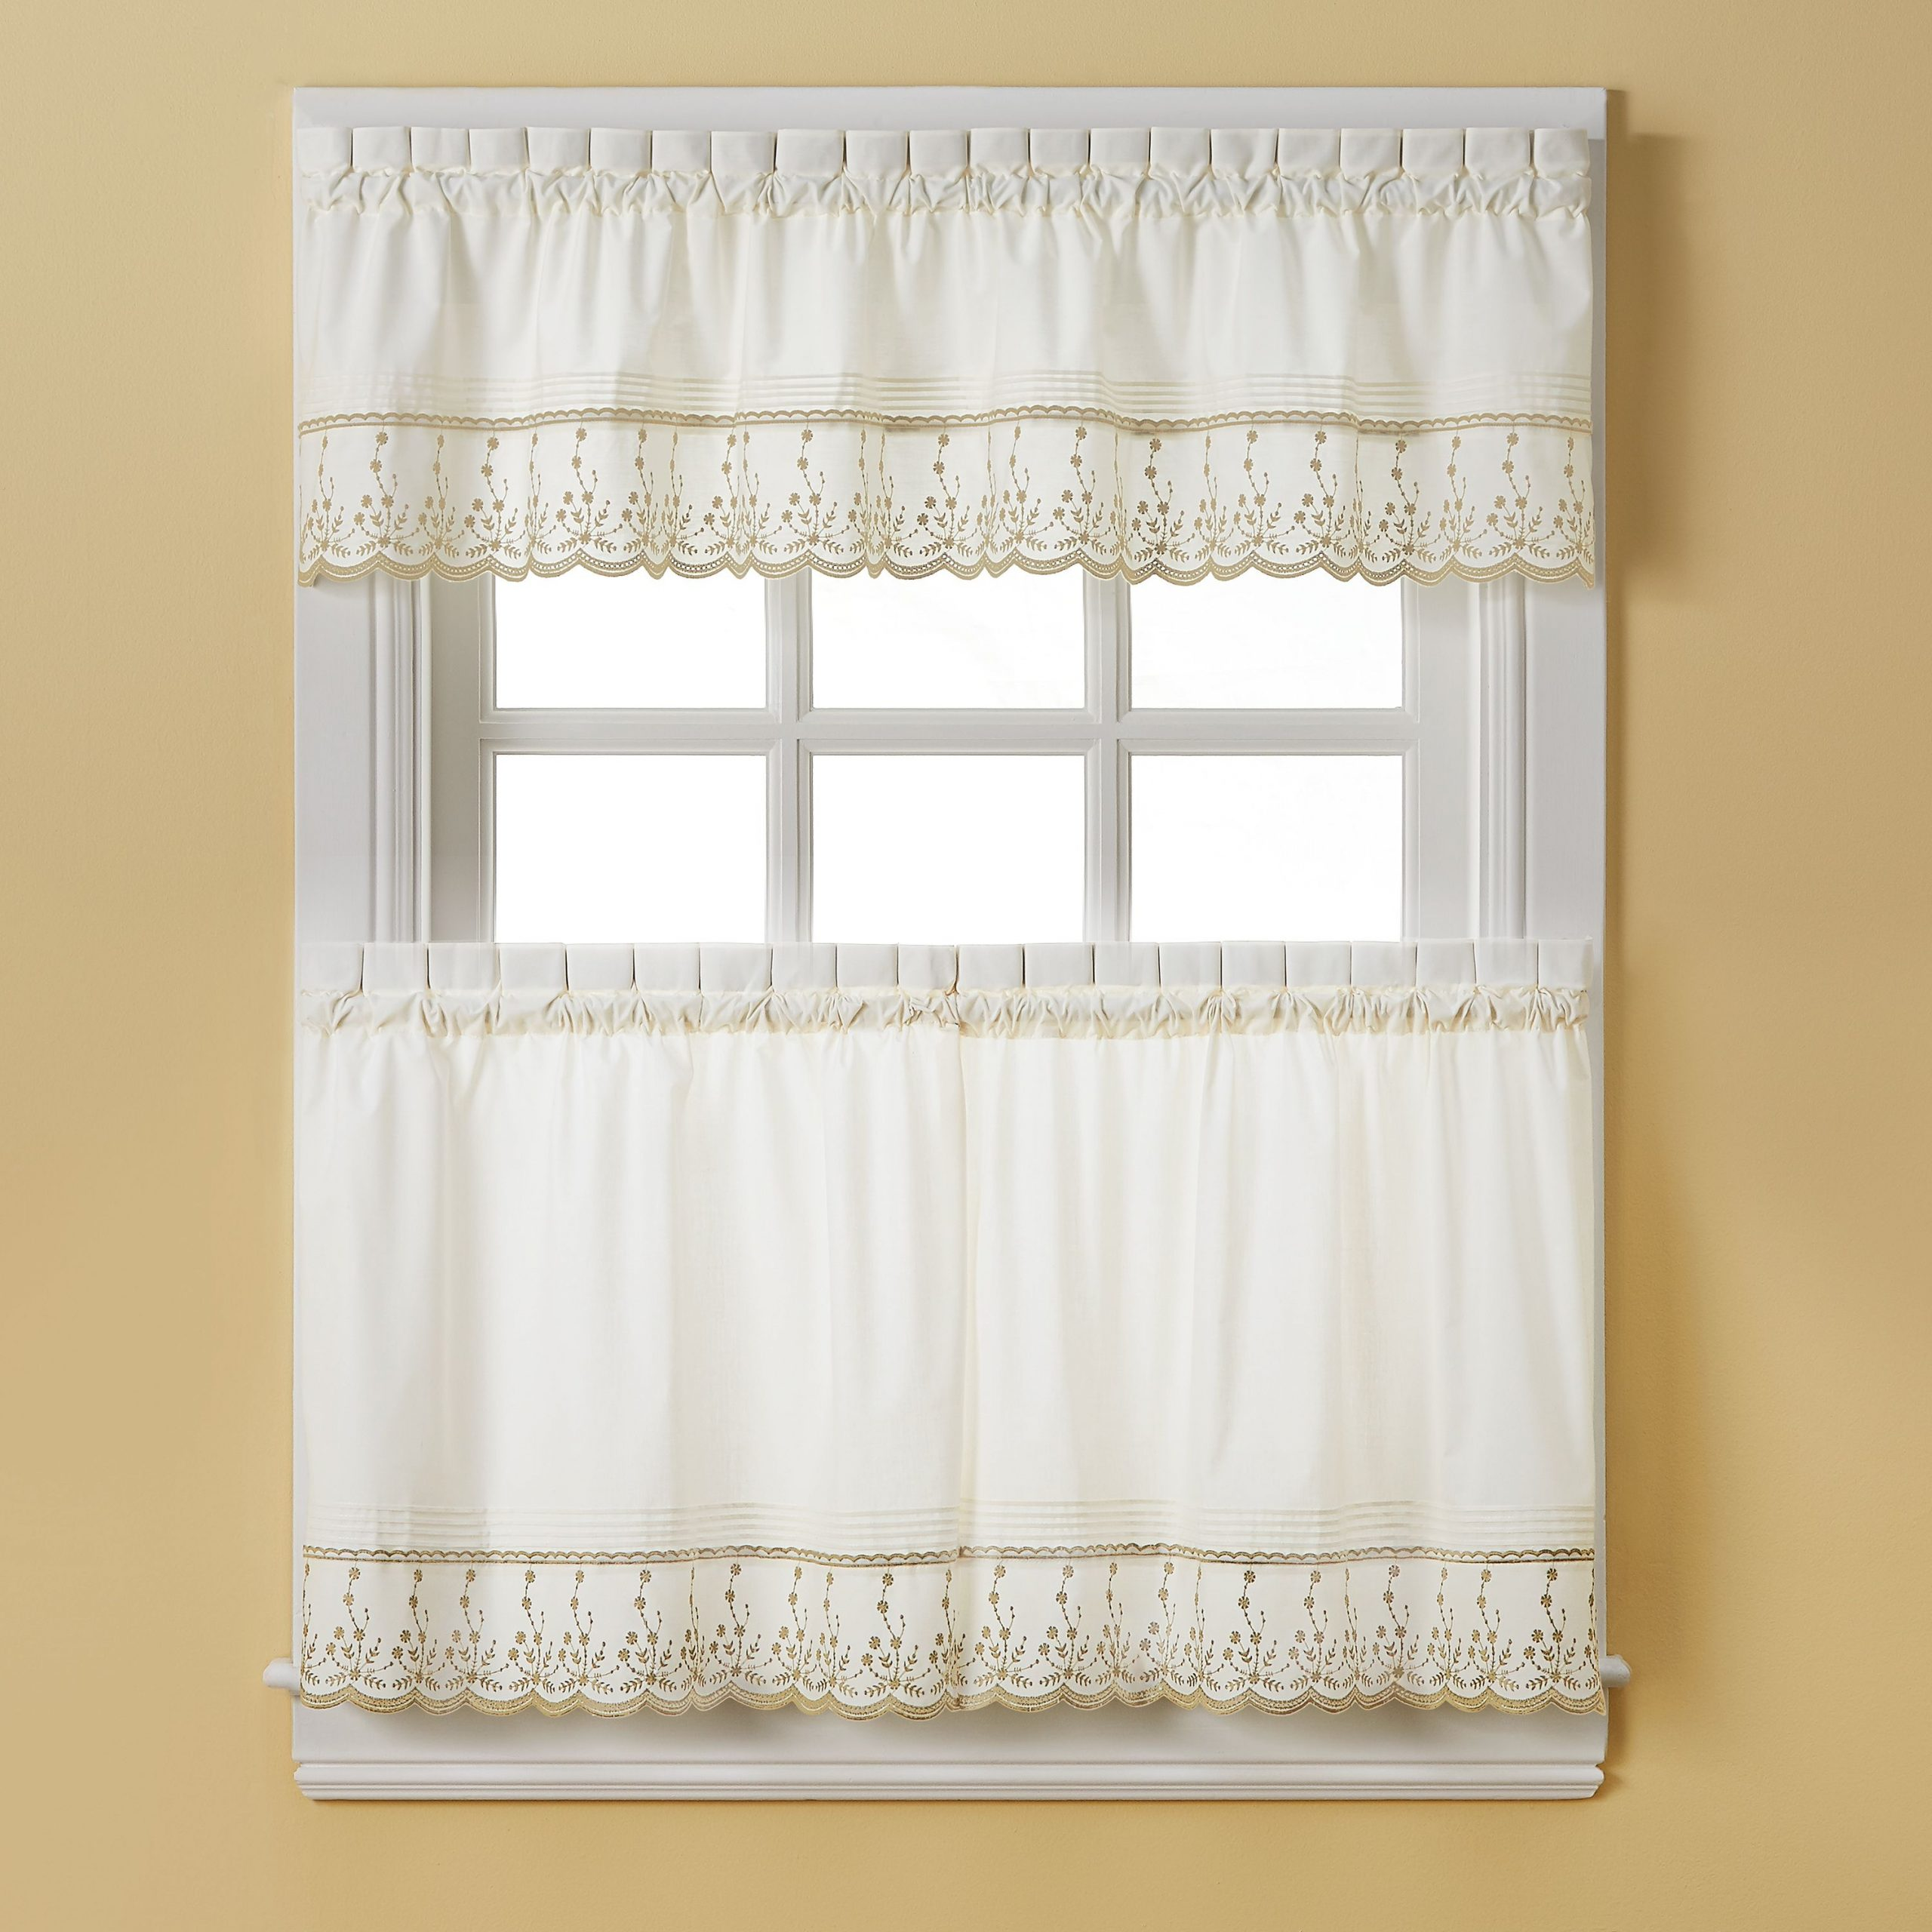 Preferred Pinterest Inside French Vanilla Country Style Curtain Parts With White Daisy Lace Accent (View 16 of 20)